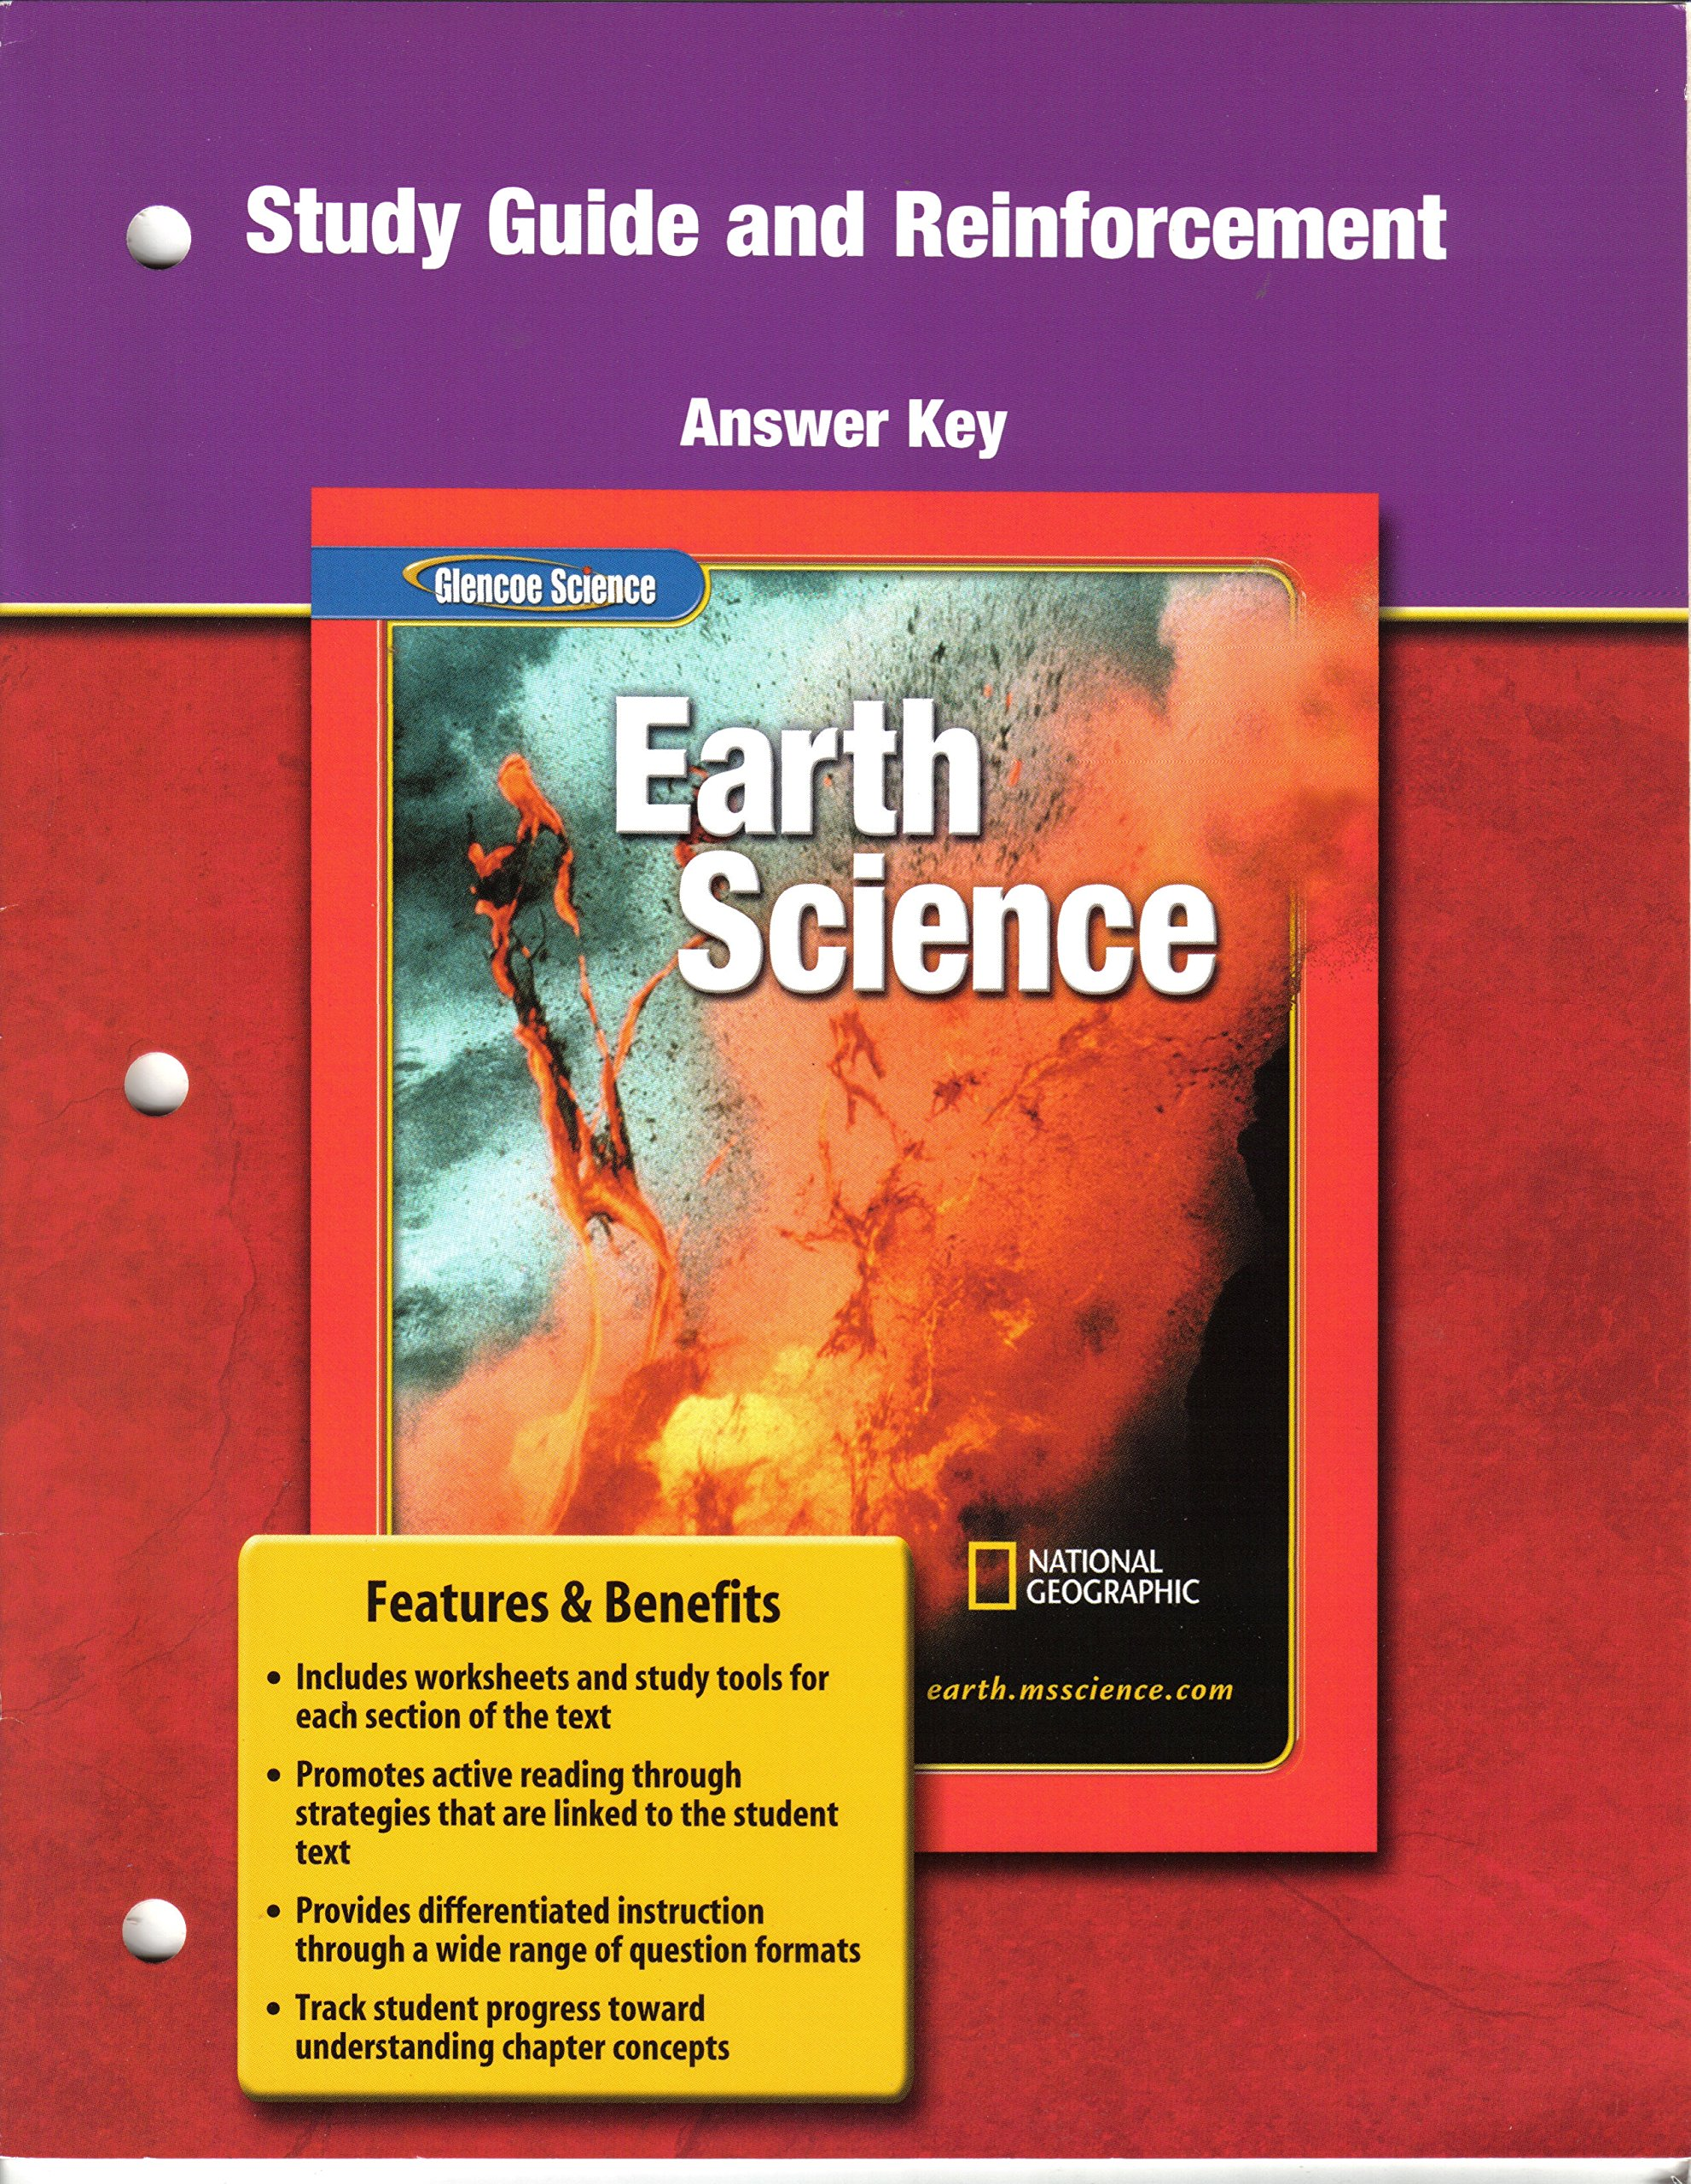 Study Guide and Reinforcement Answer Key for Glencoe Earth Science:  Glencoe: 9780078669736: Amazon.com: Books